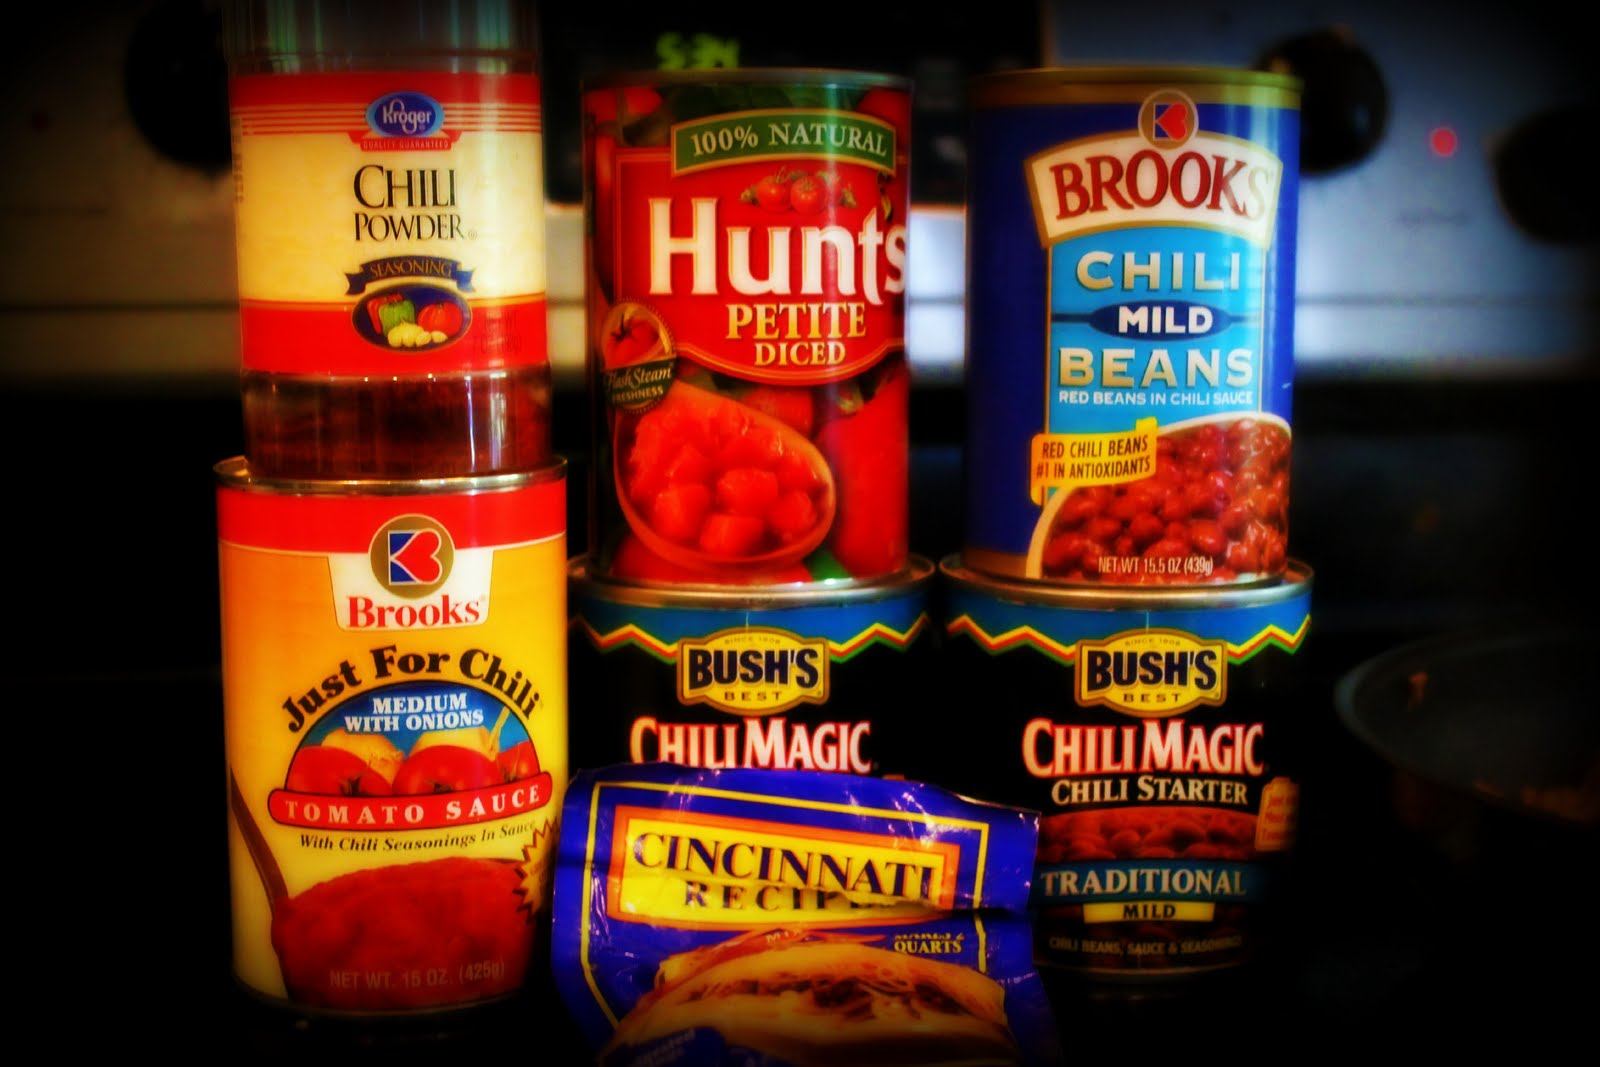 Where Have all the Hobos Gone?: Chili for Lazy, Unoriginal ...